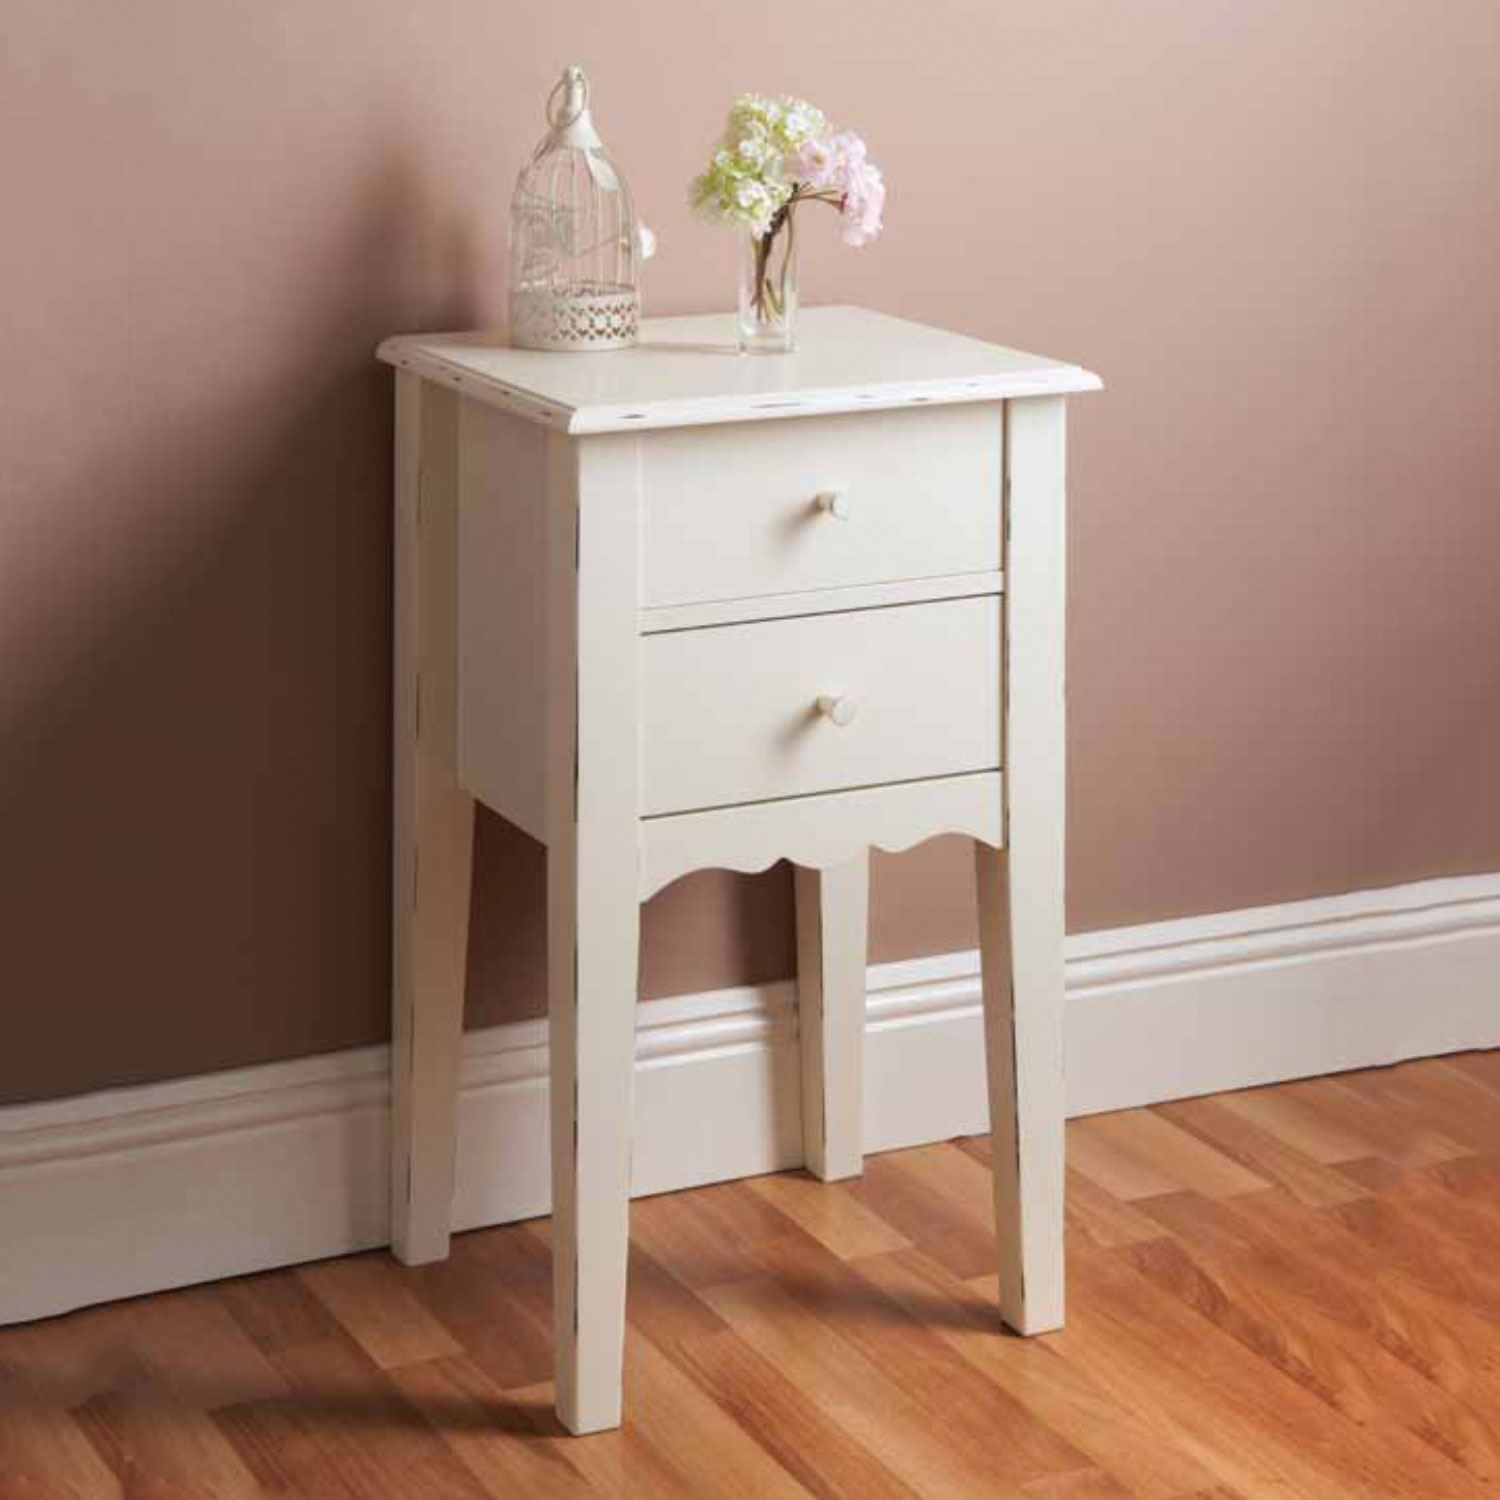 Details About Victoria White Shabby Chic Bedside Table Unit Stand Cabinets With 2 Drawers New